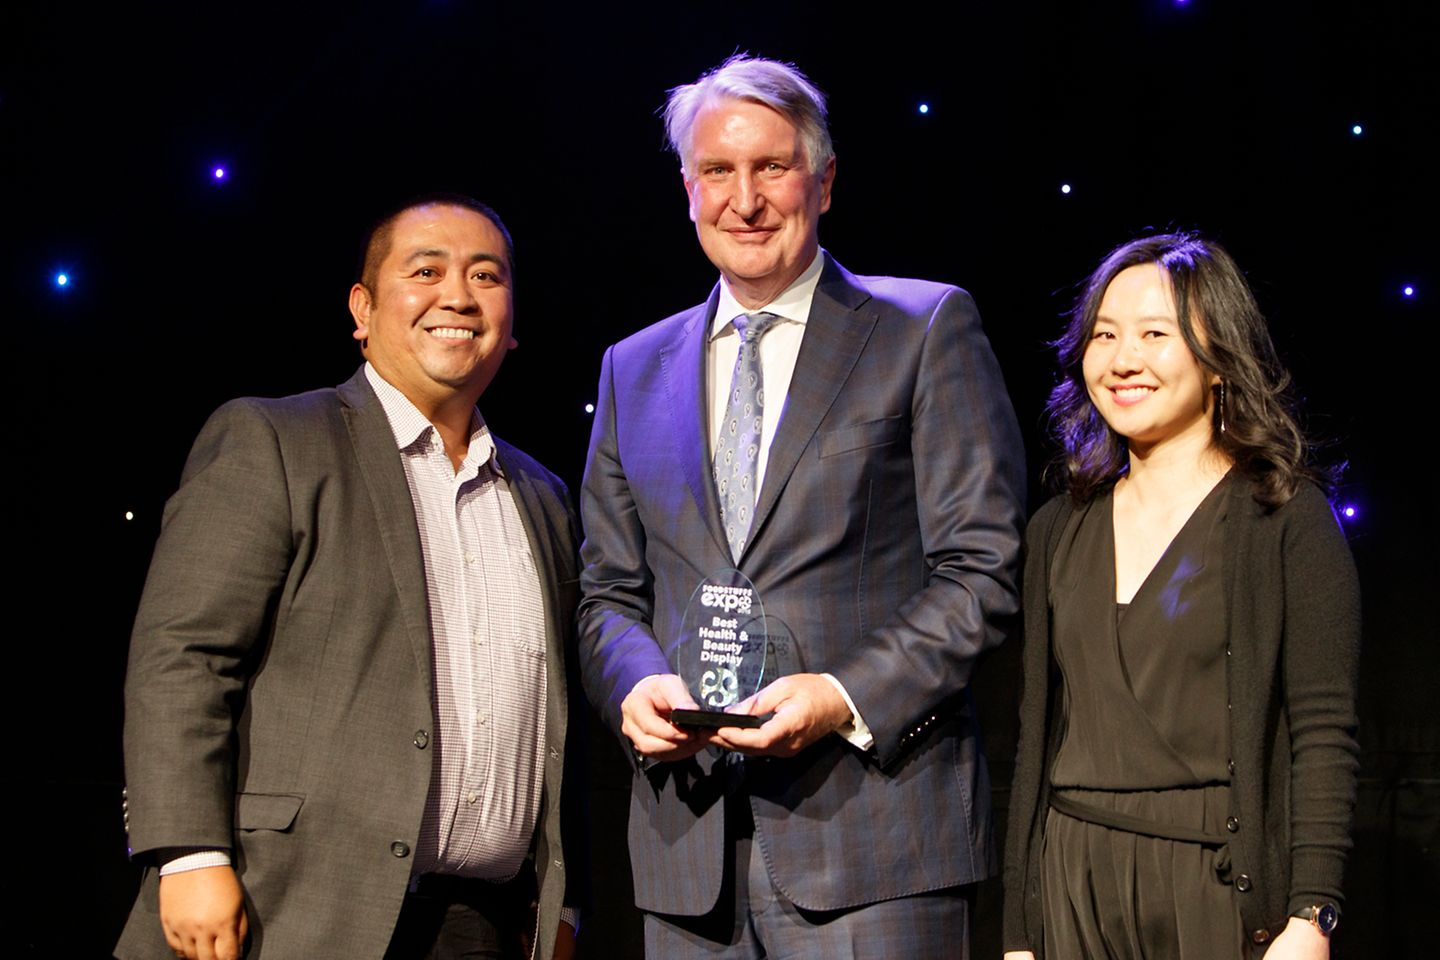 Henkel New Zealand's Beauty Care team receive the award from Steve Anderson, the Chief Executive Officer of Foodstuffs South Island Ltd.